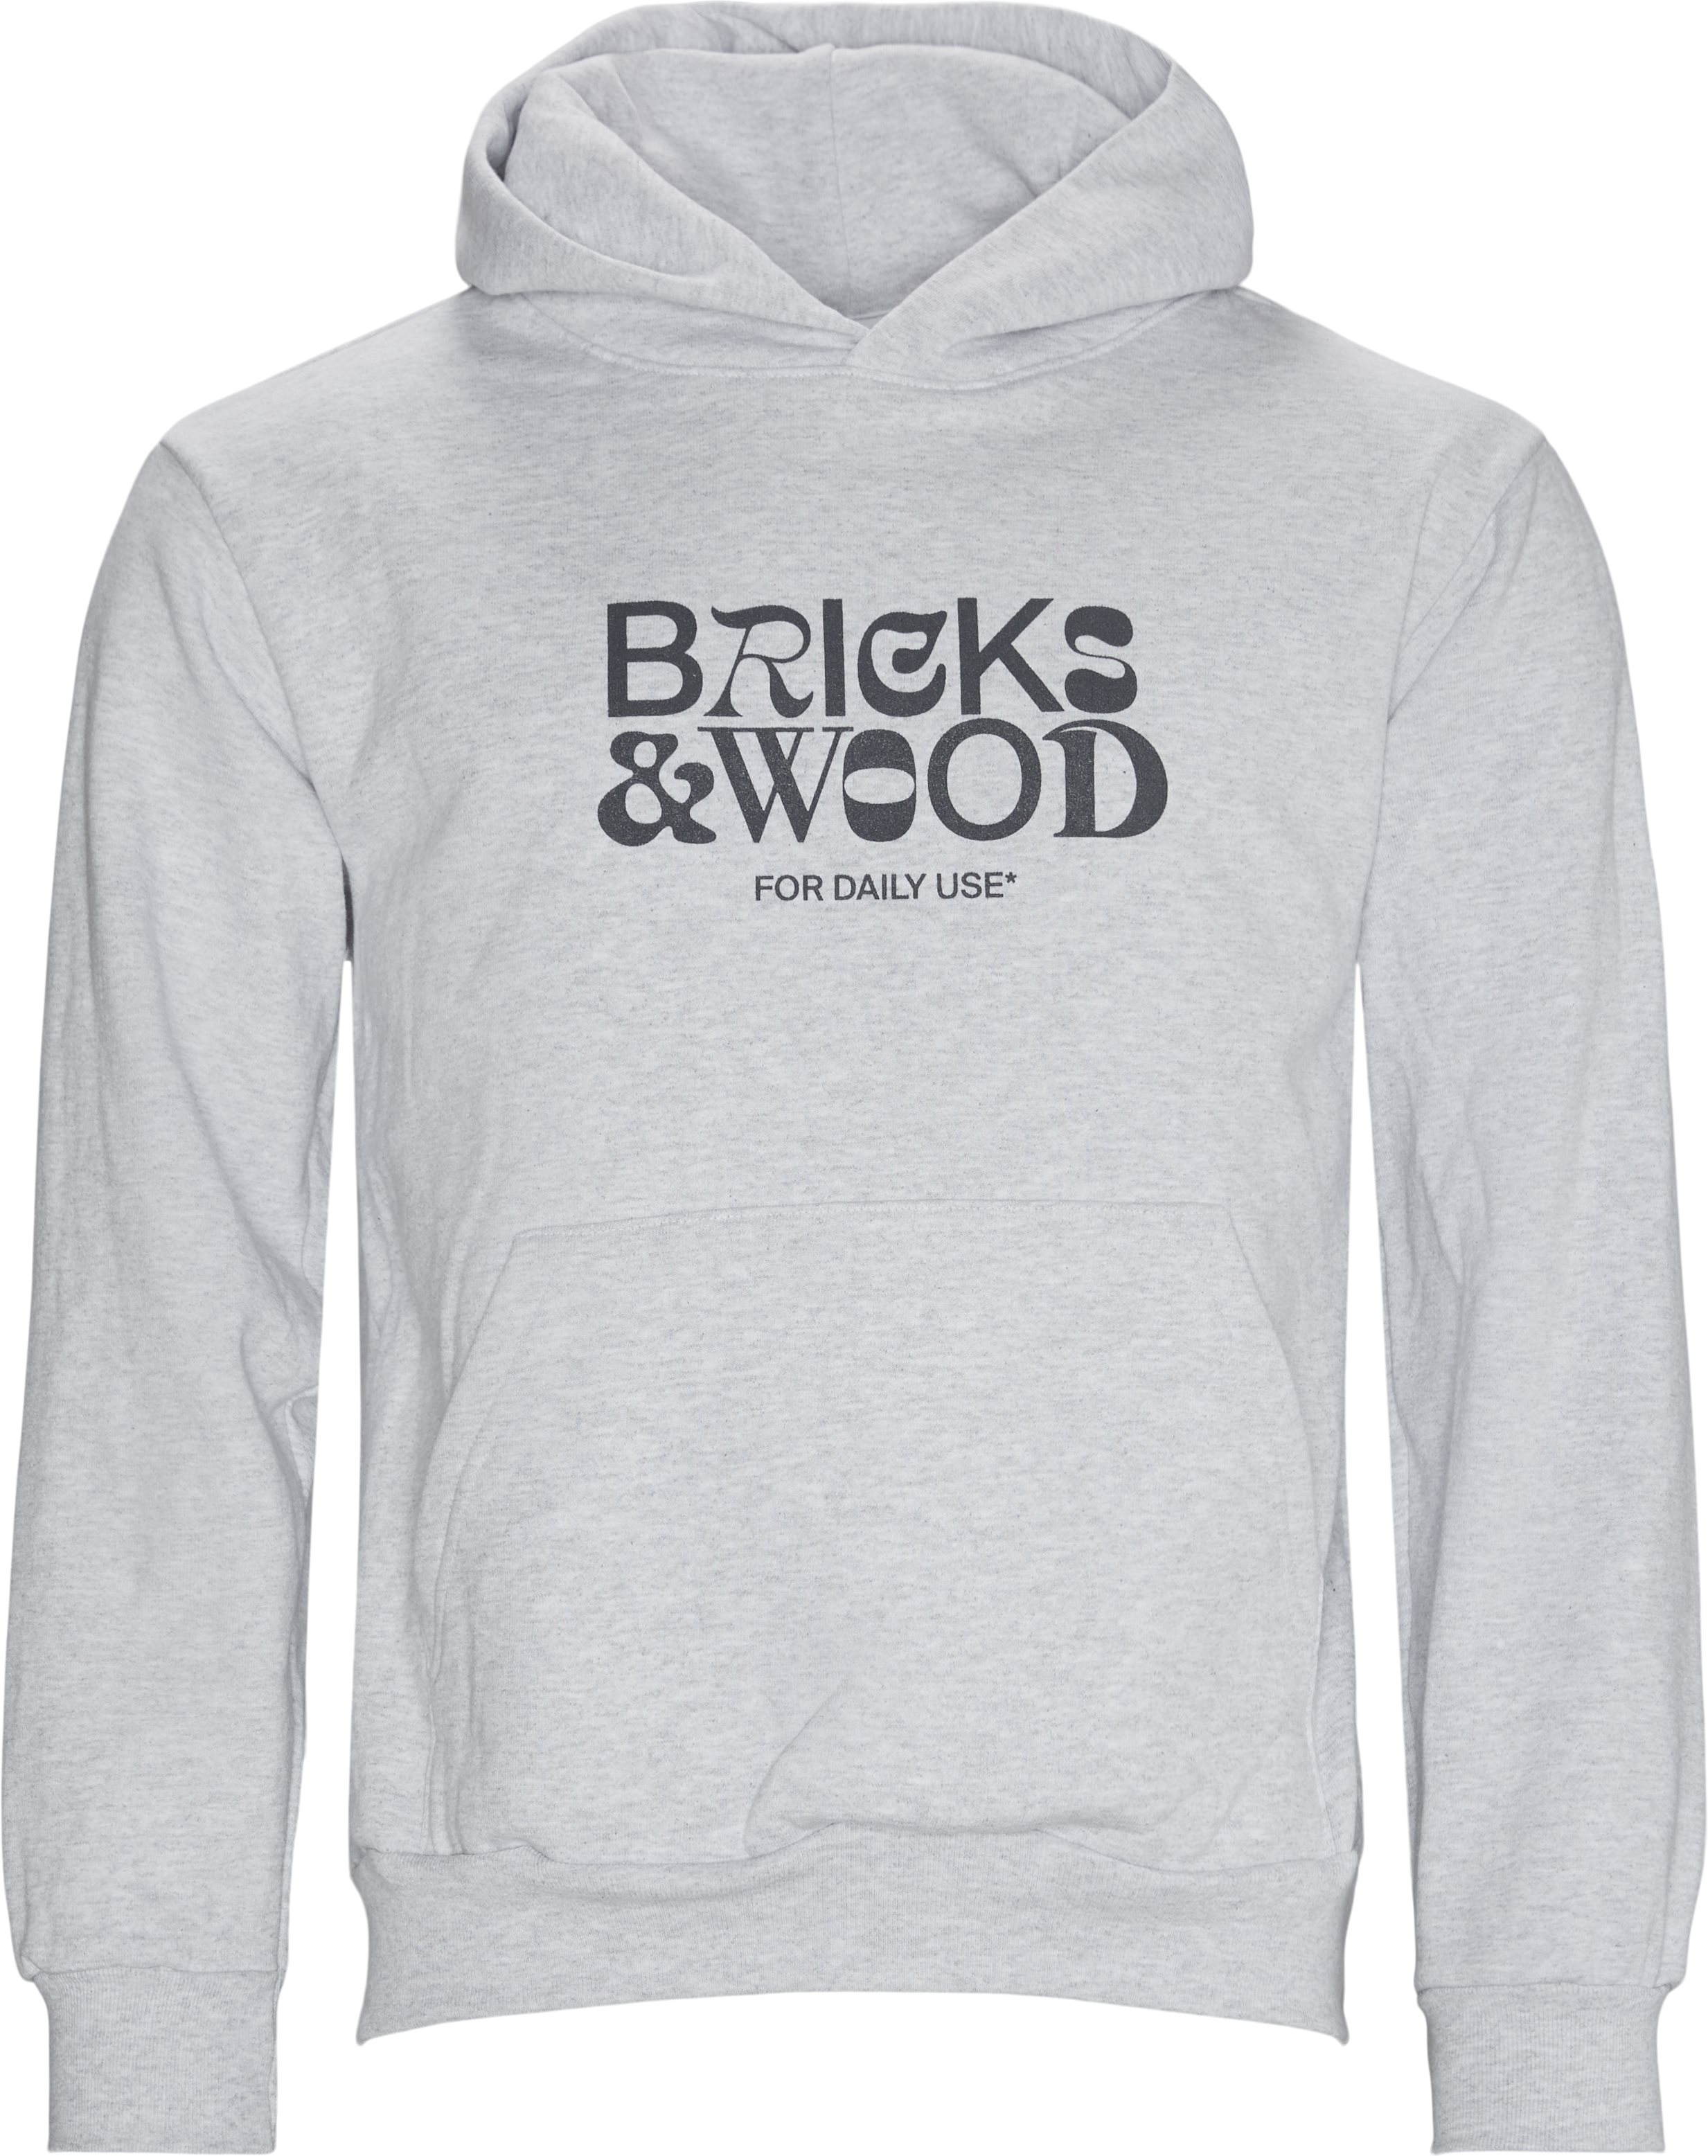 For Daily Use Hoodie  - Sweatshirts - Regular - Grå